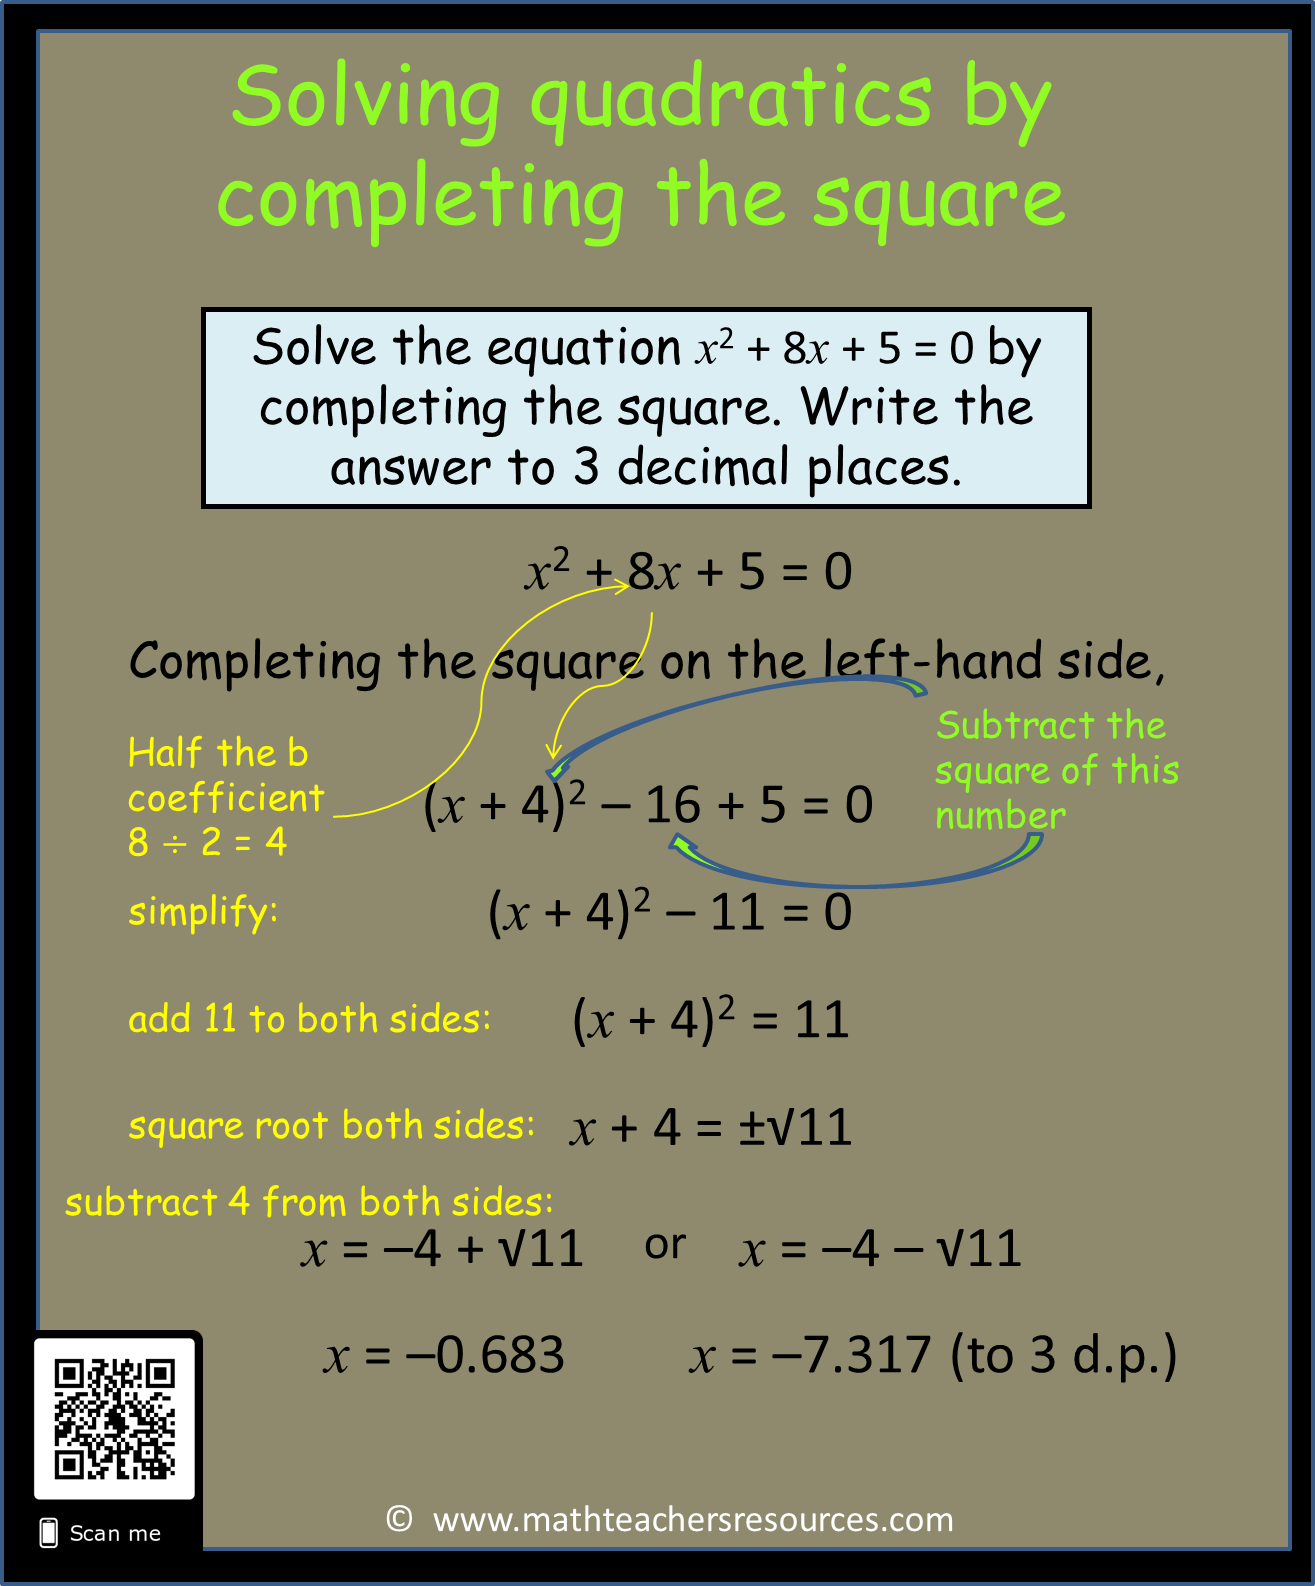 medium resolution of How to solve quadratic equations by completing the square   Math  Infographic   Solving quadratic equations